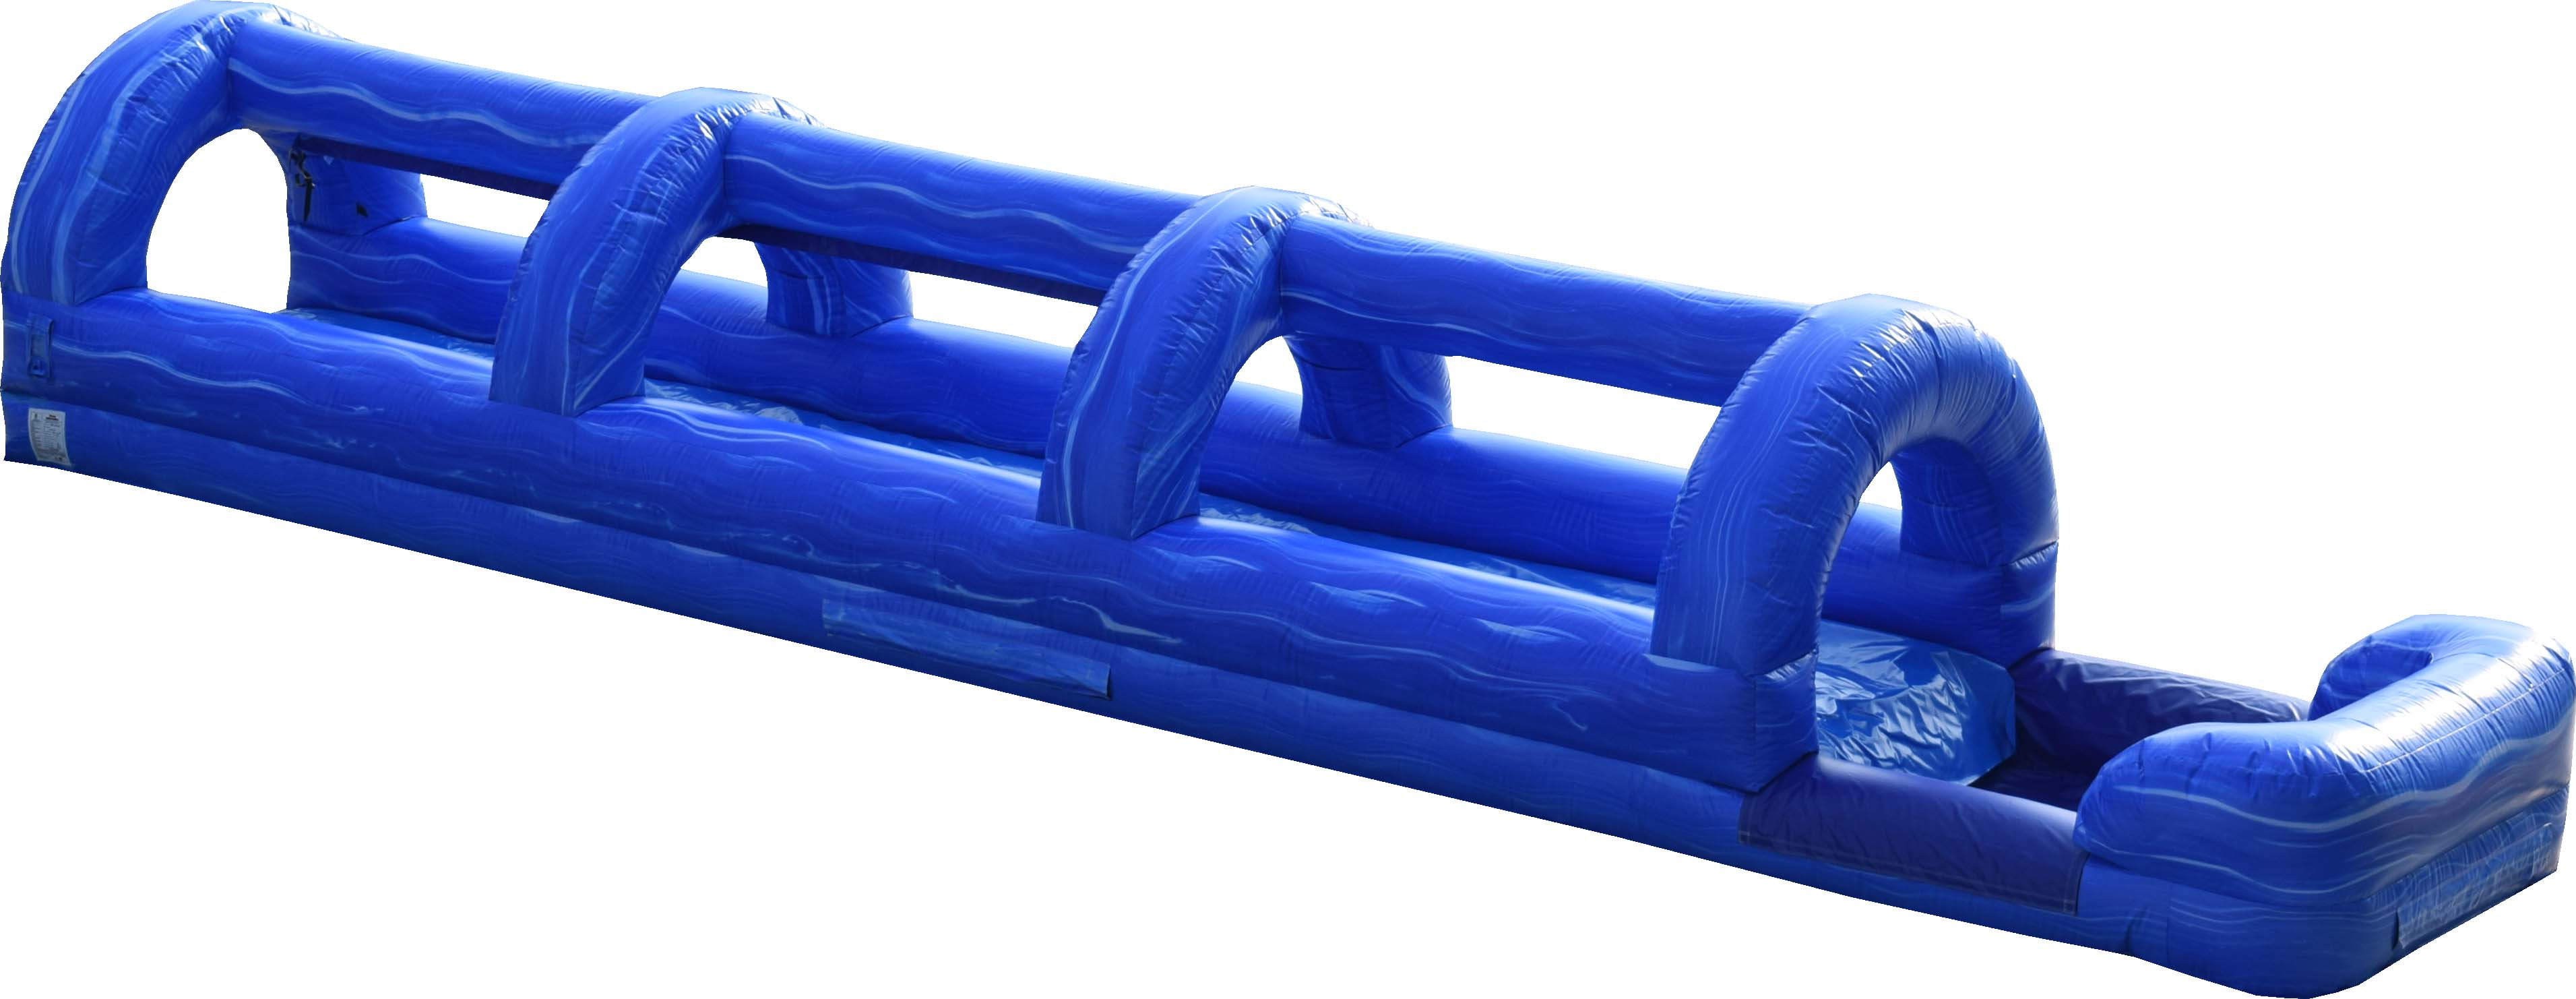 Waco Bounce House Rentals - Party Equipment Rental Service